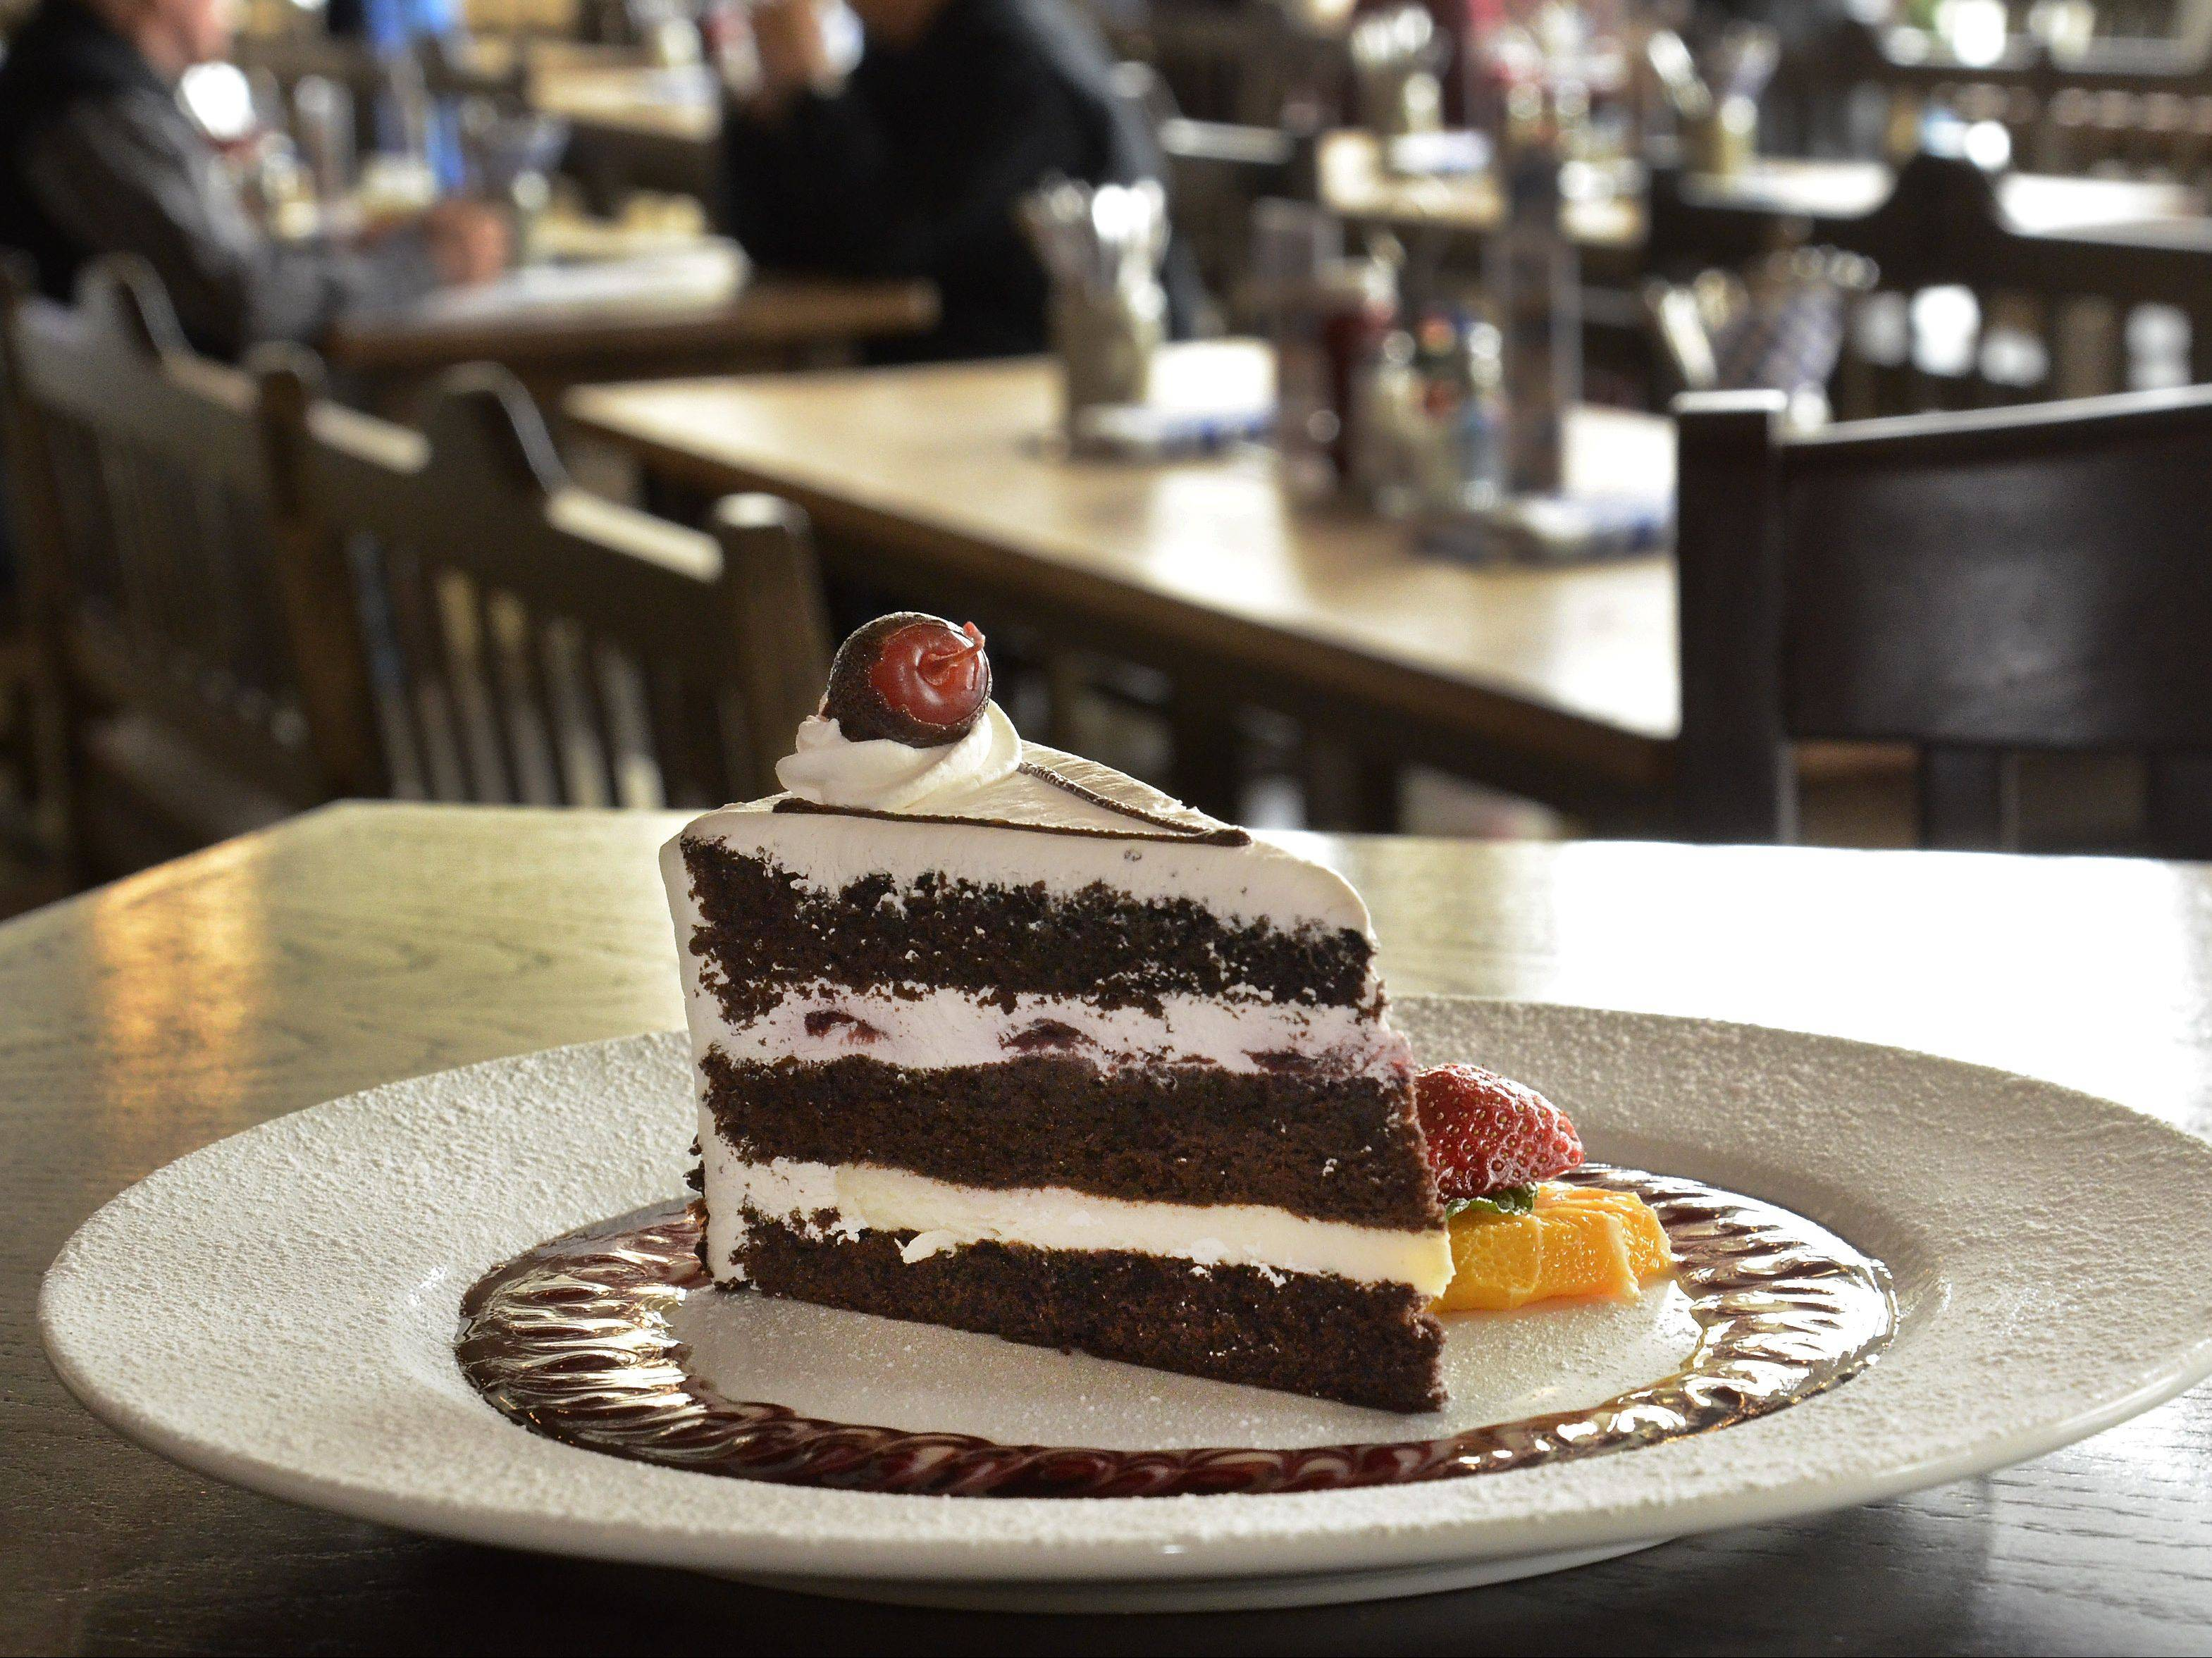 Schwarzwalder Kirschtorte, aka Black Forest cake, is one of a handful of desserts available at Hofbrauhaus in Rosemont.